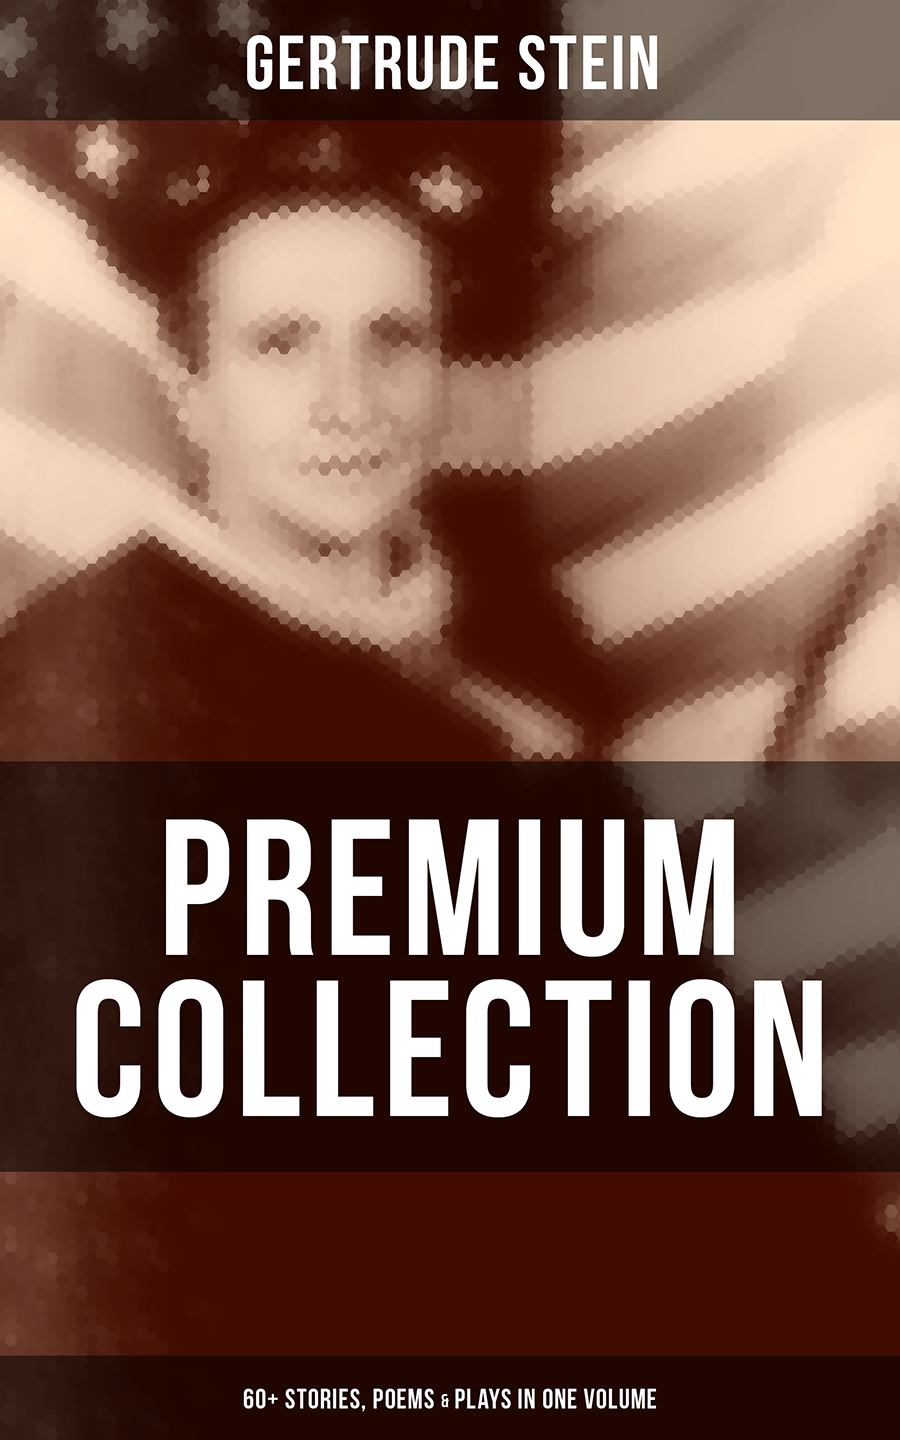 Фото - Gertrude Stein GERTRUDE STEIN Premium Collection: 60+ Stories, Poems & Plays in One Volume lillian gertrude kimball elementary english 1